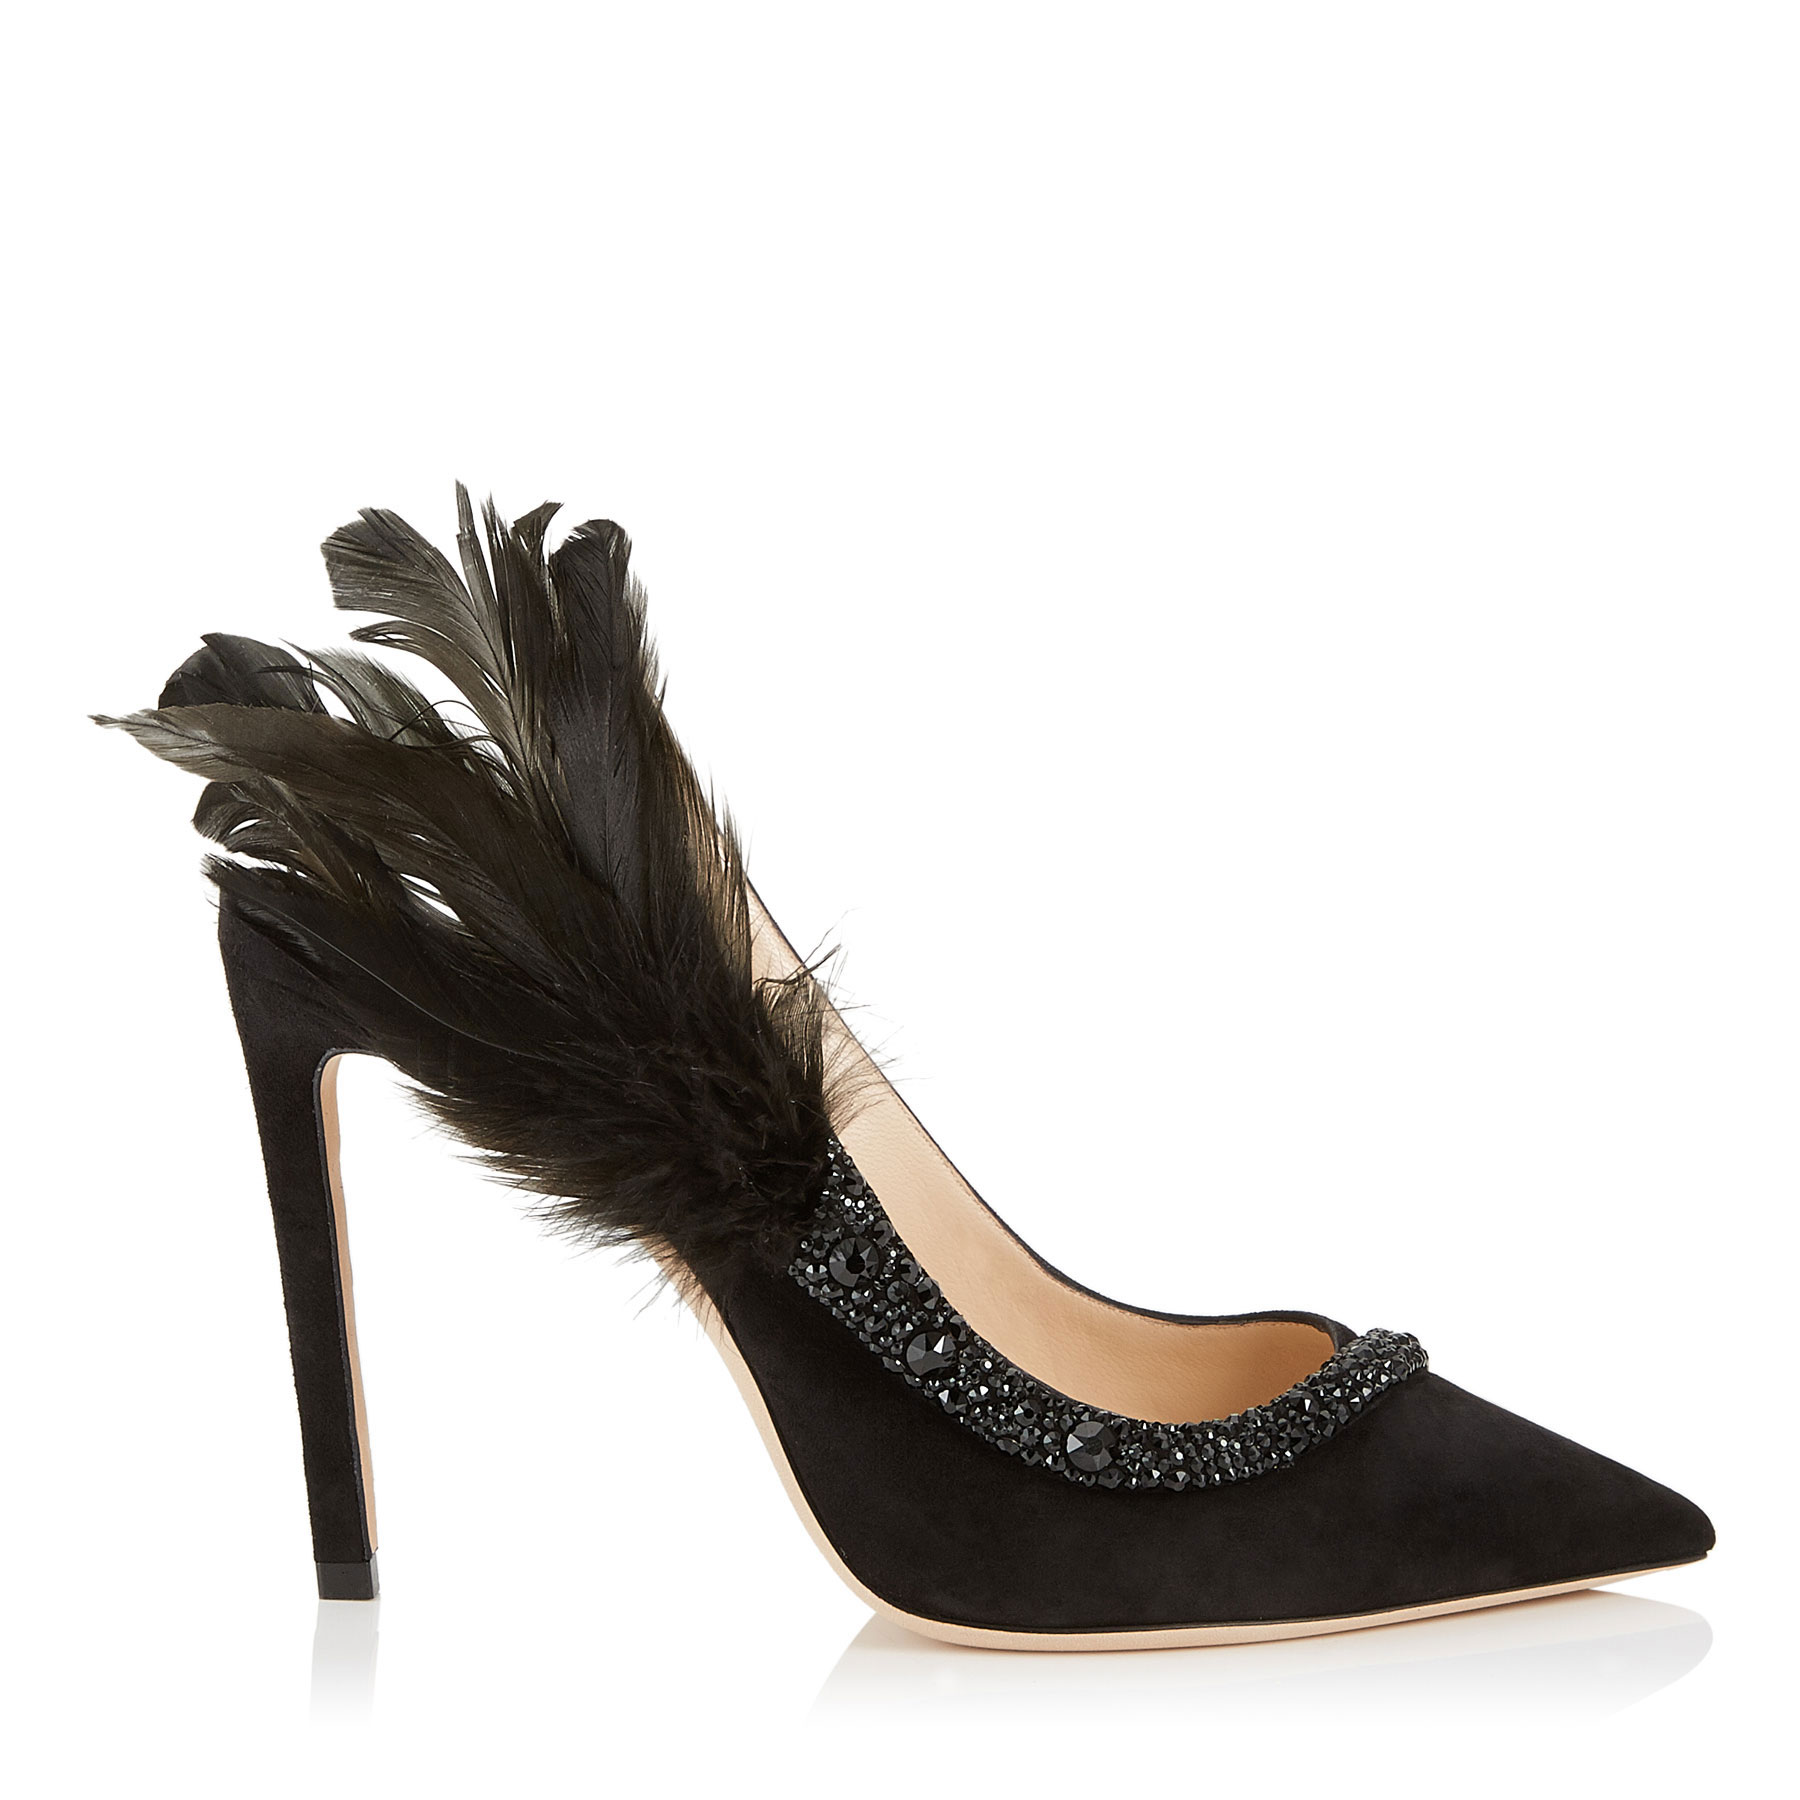 TACEY 100 Black Suede Pointy Toe Pumps with Crystals and Feathers by Jimmy Choo